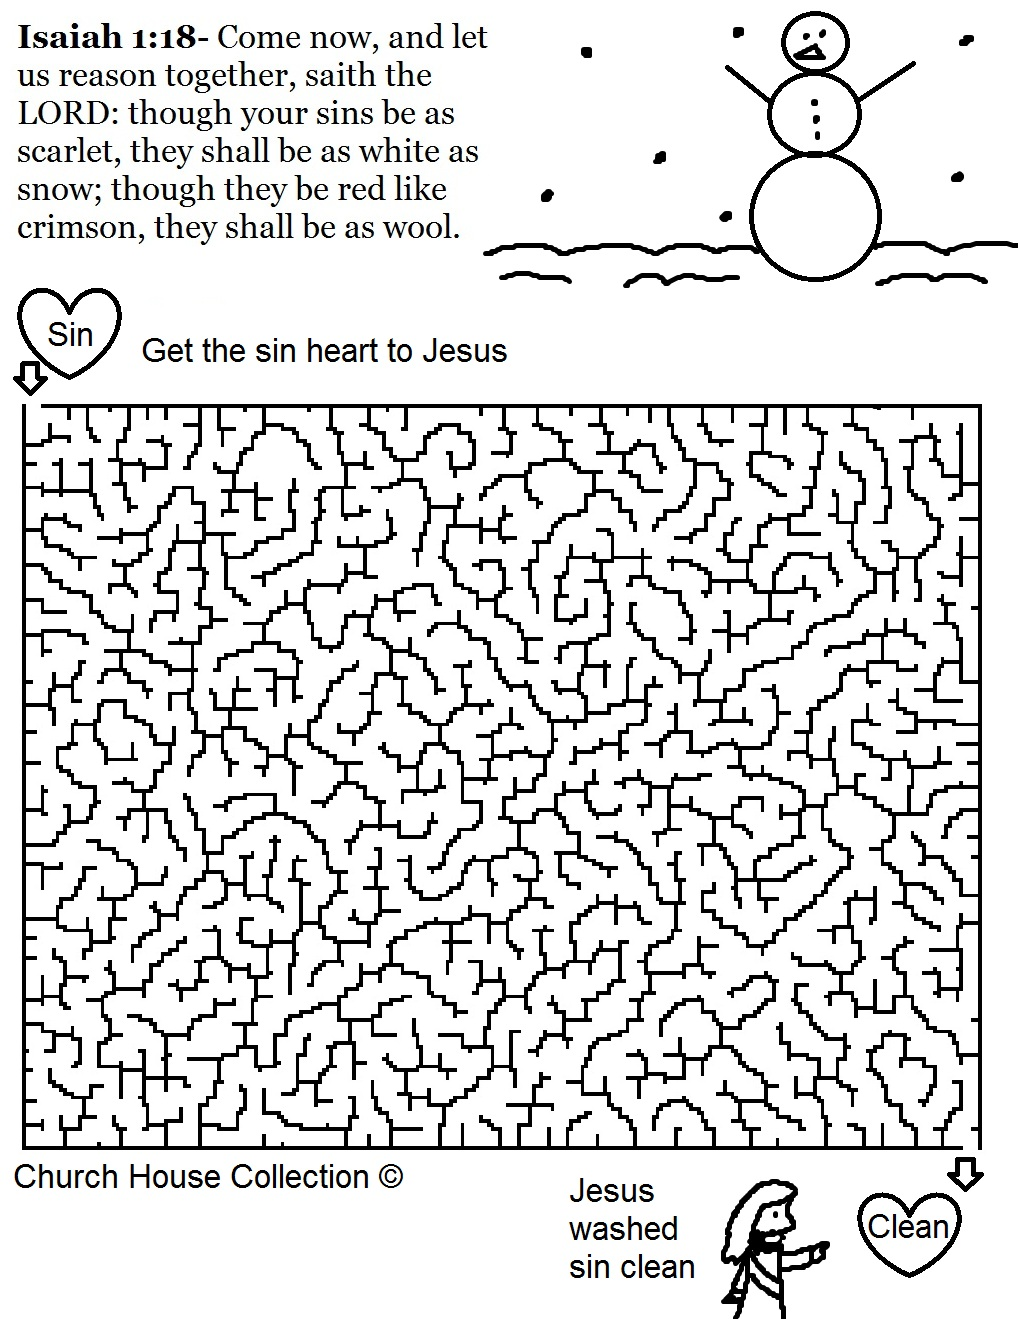 Free Christmas Snowman Isaiah 1:18 Printable Maze Template for kids in Sunday school. Use with our Free Christmas Sunday school lessons for kids. By Church House Collection.